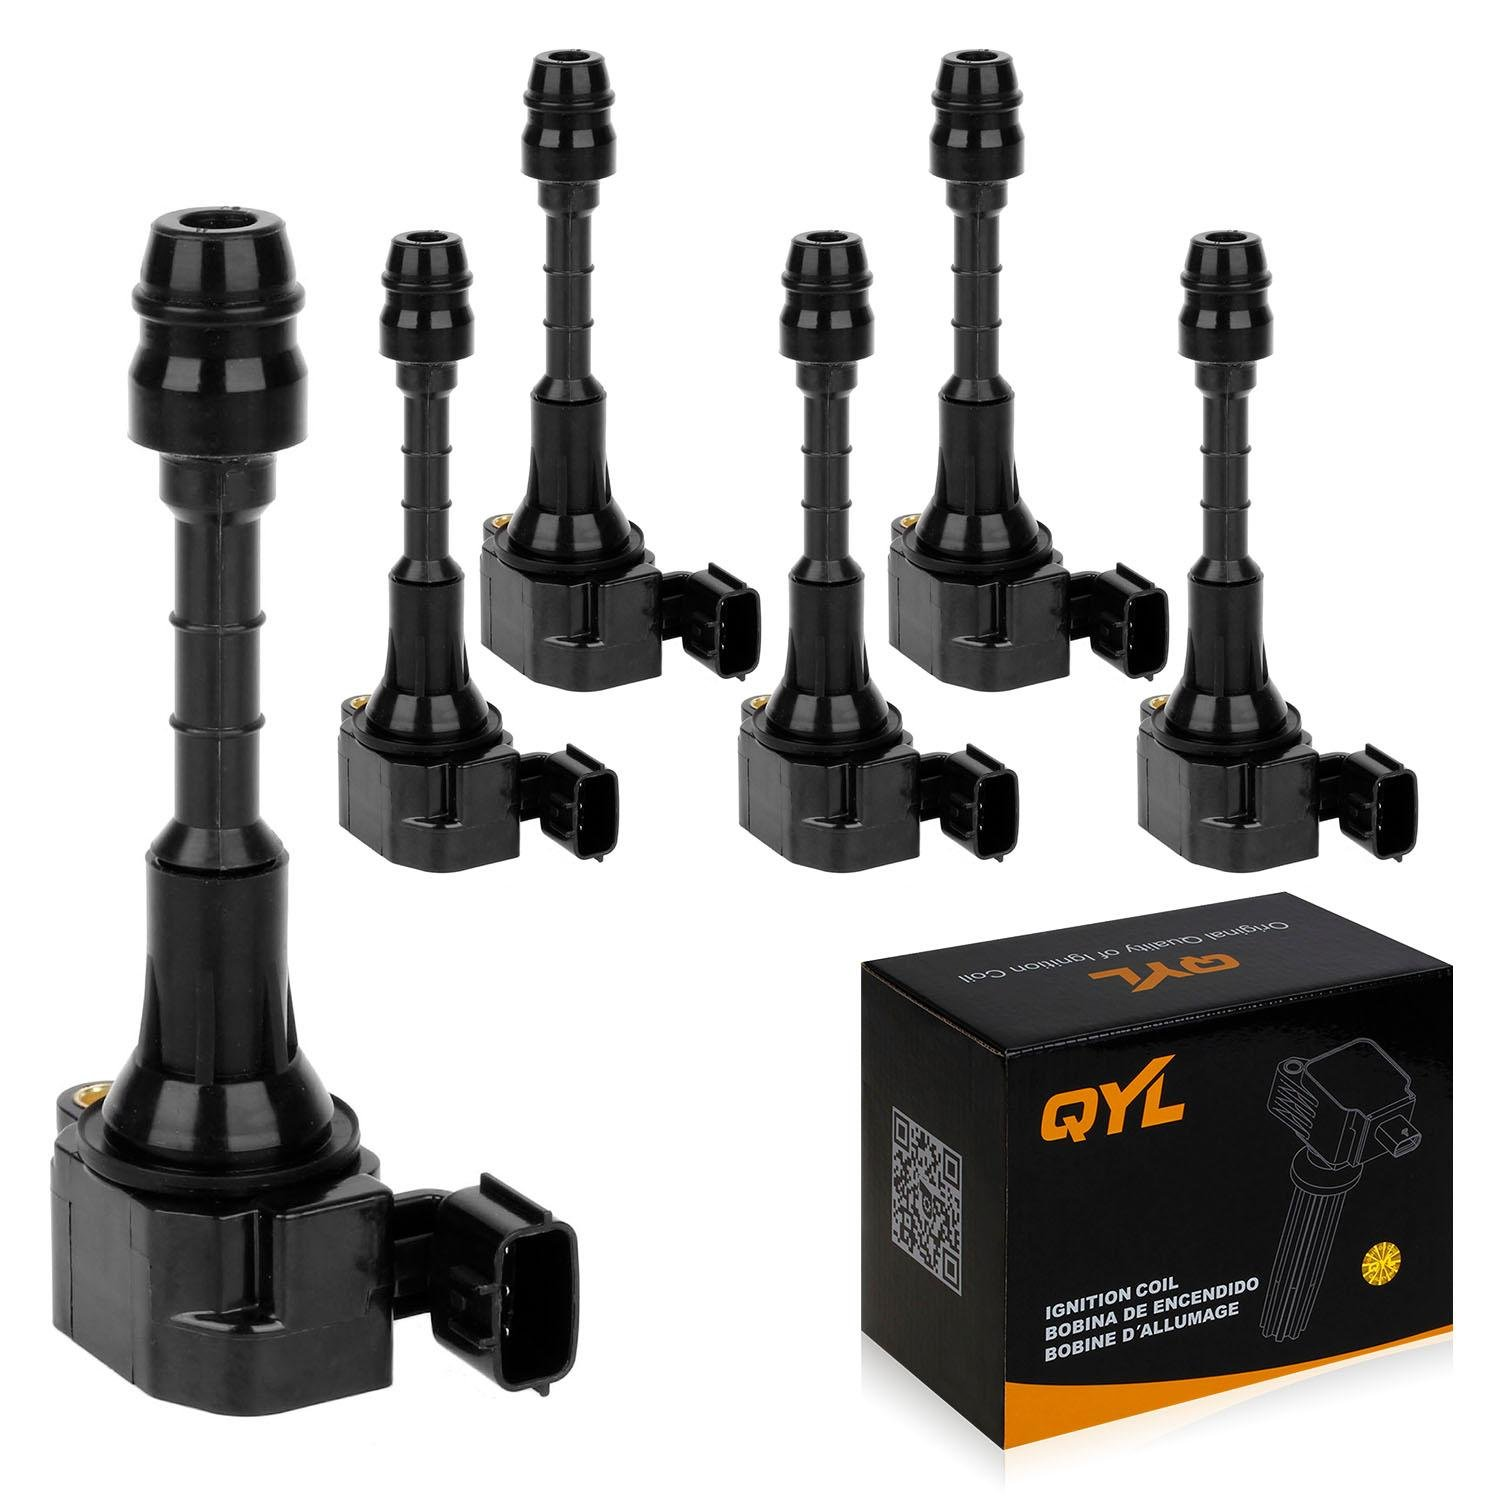 QYL Pack of 6 Ignition Coil for Nissan 350Z Infiniti FX35 G35 G35X M35 M35X V6 3.5L C1439 UF401 22448-AL615(Not Fit 07 08 Nissan 350Z)